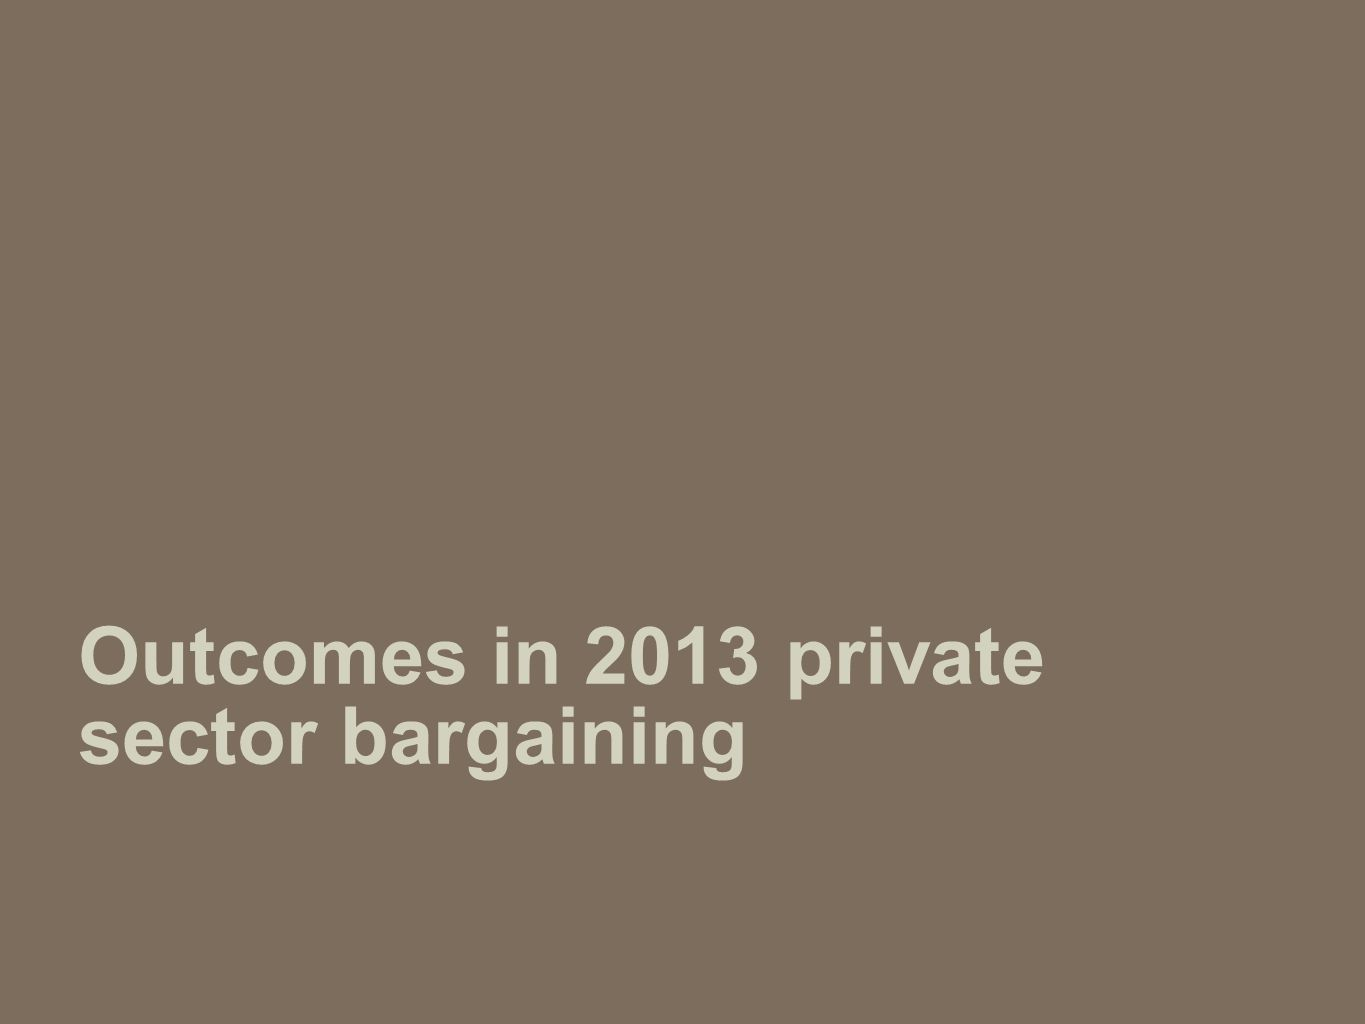 Outcomes in 2013 private sector bargaining